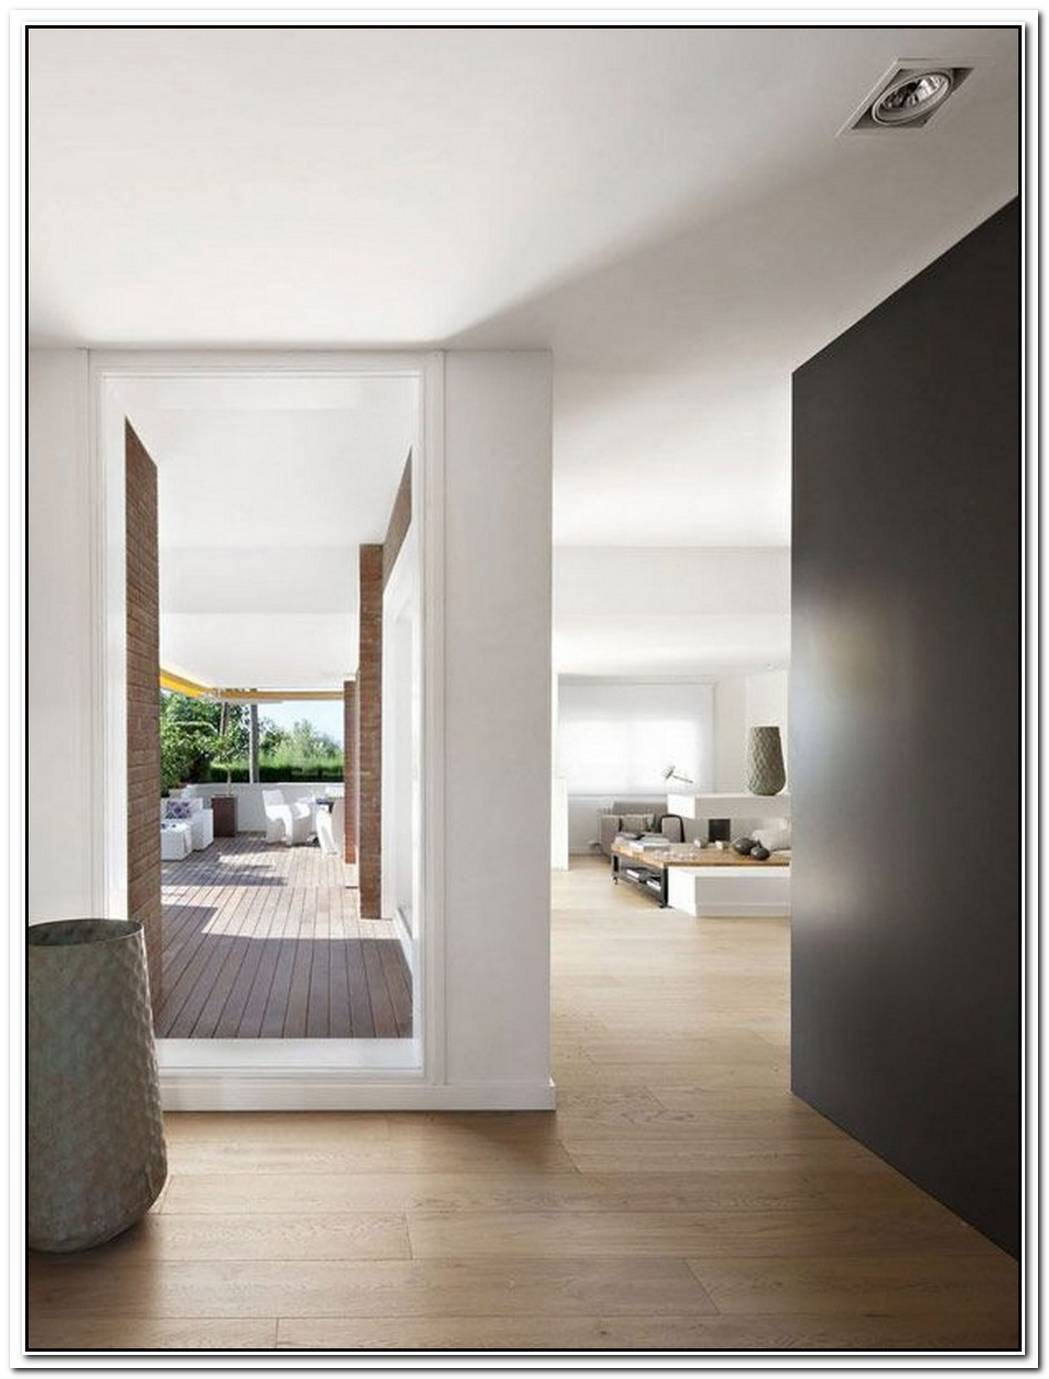 Beauty Of White InteriorsVivienda En Llaveneres In Spain